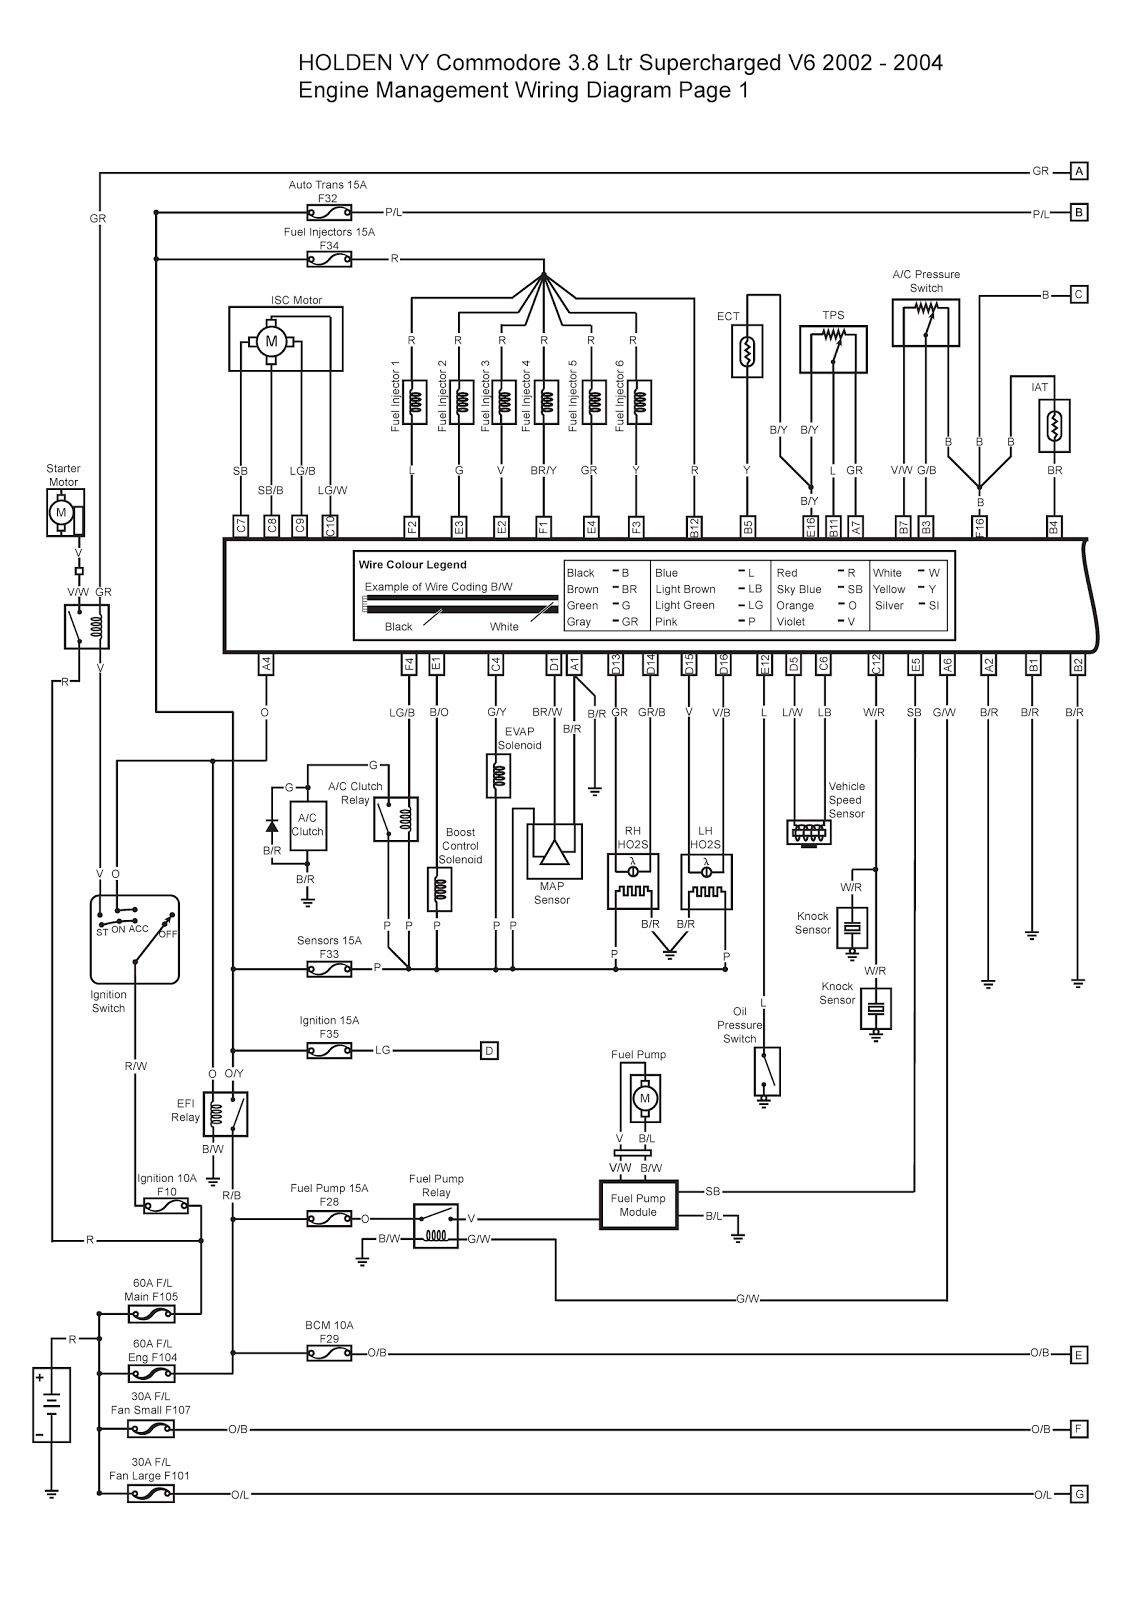 2006 chevy cobalt ss supercharged engine chevrolet el camino holden ute hq holden wiring diagram holden [ 1131 x 1600 Pixel ]